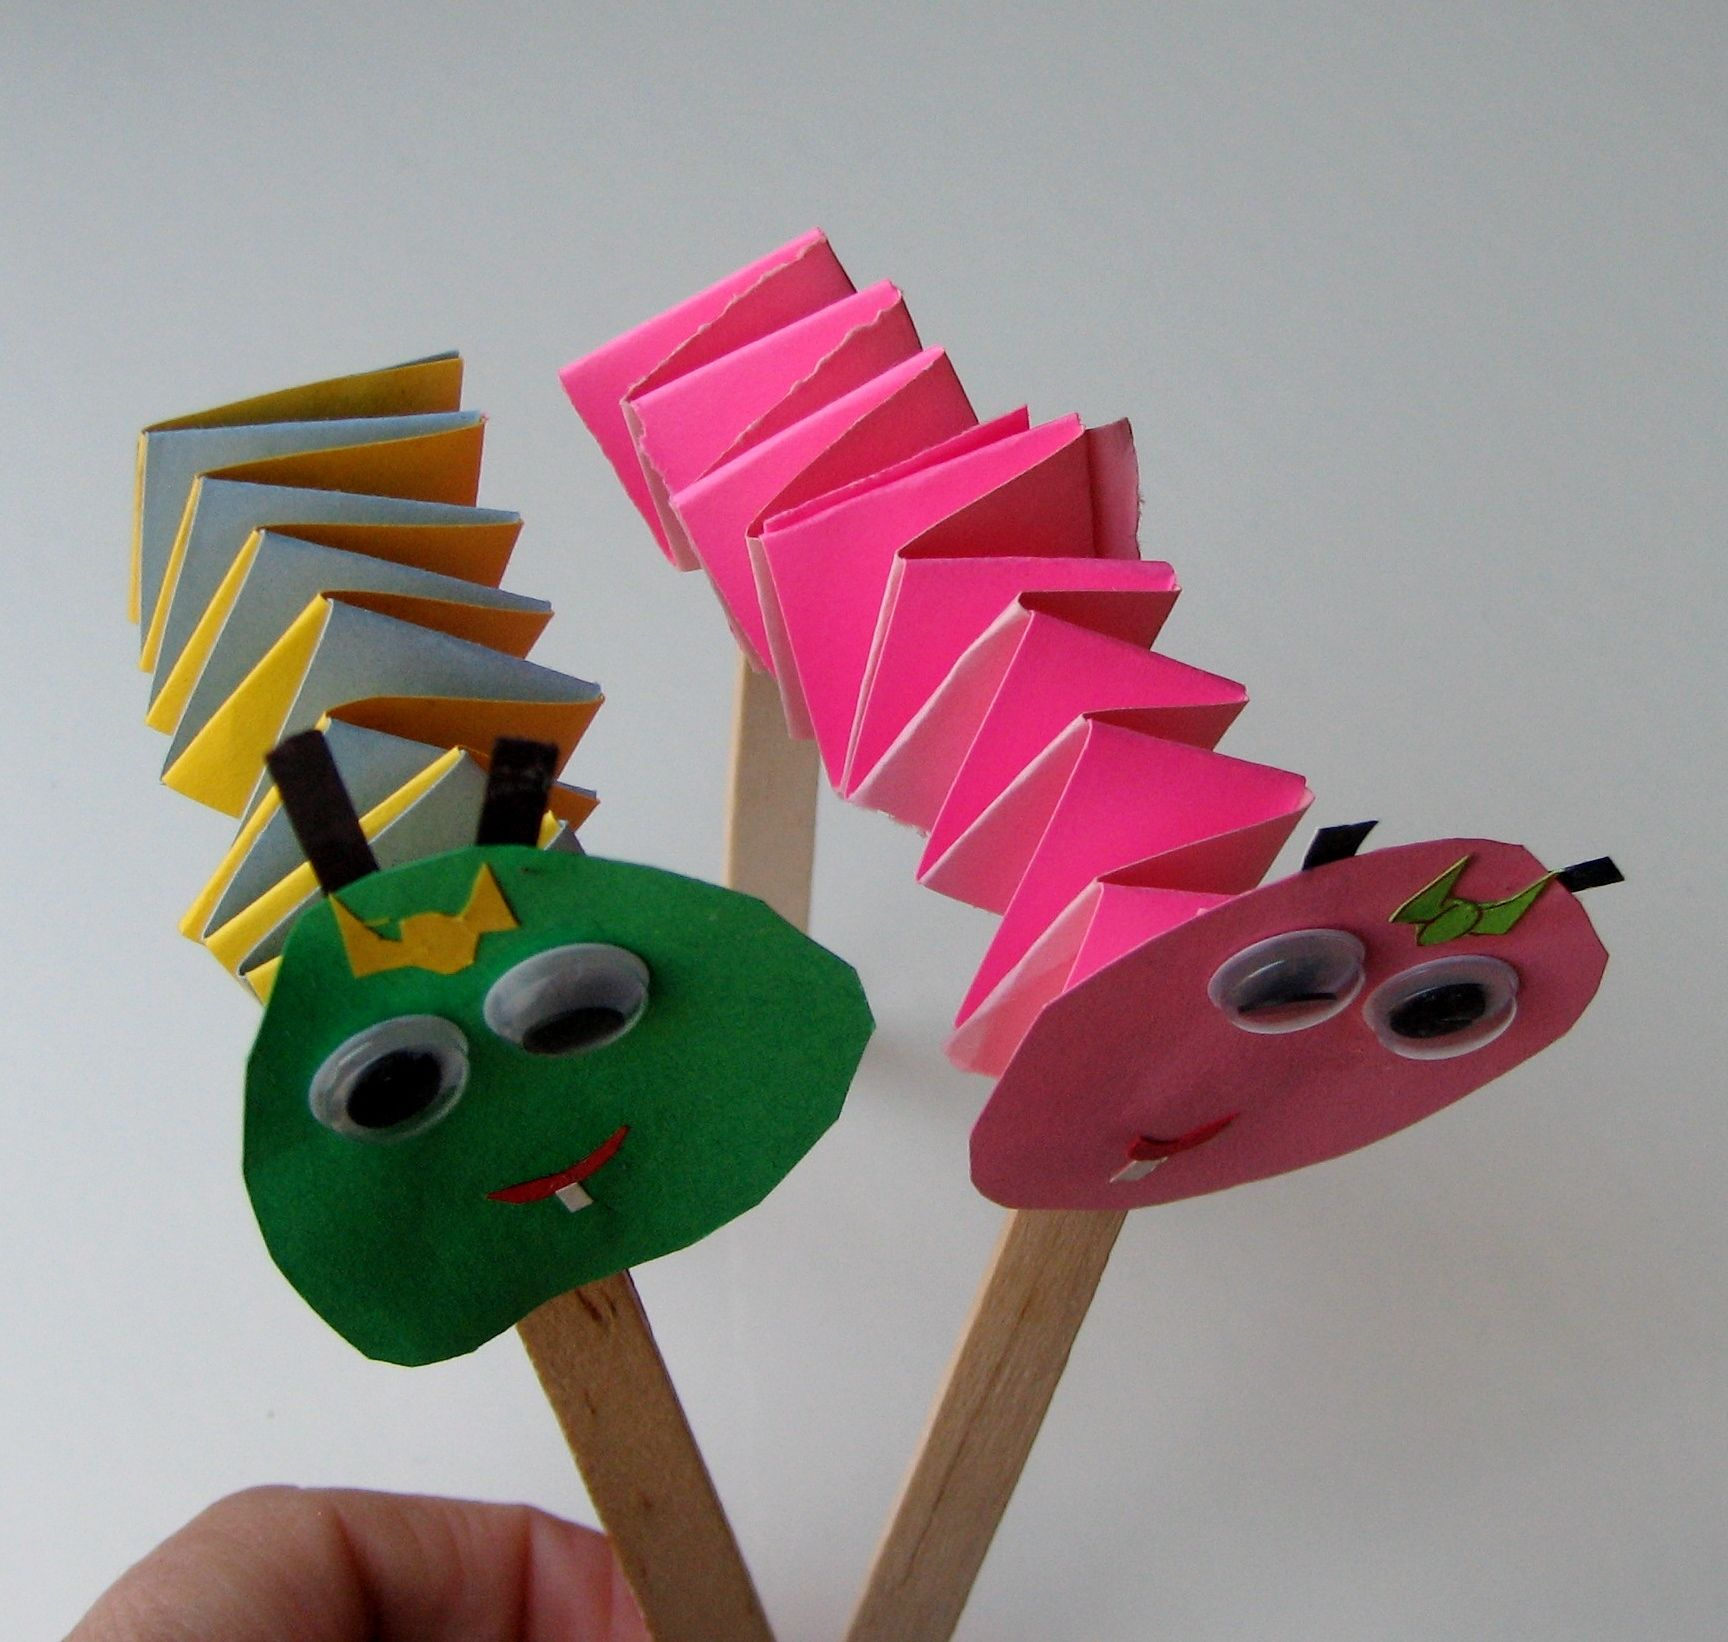 Accordion Puppets